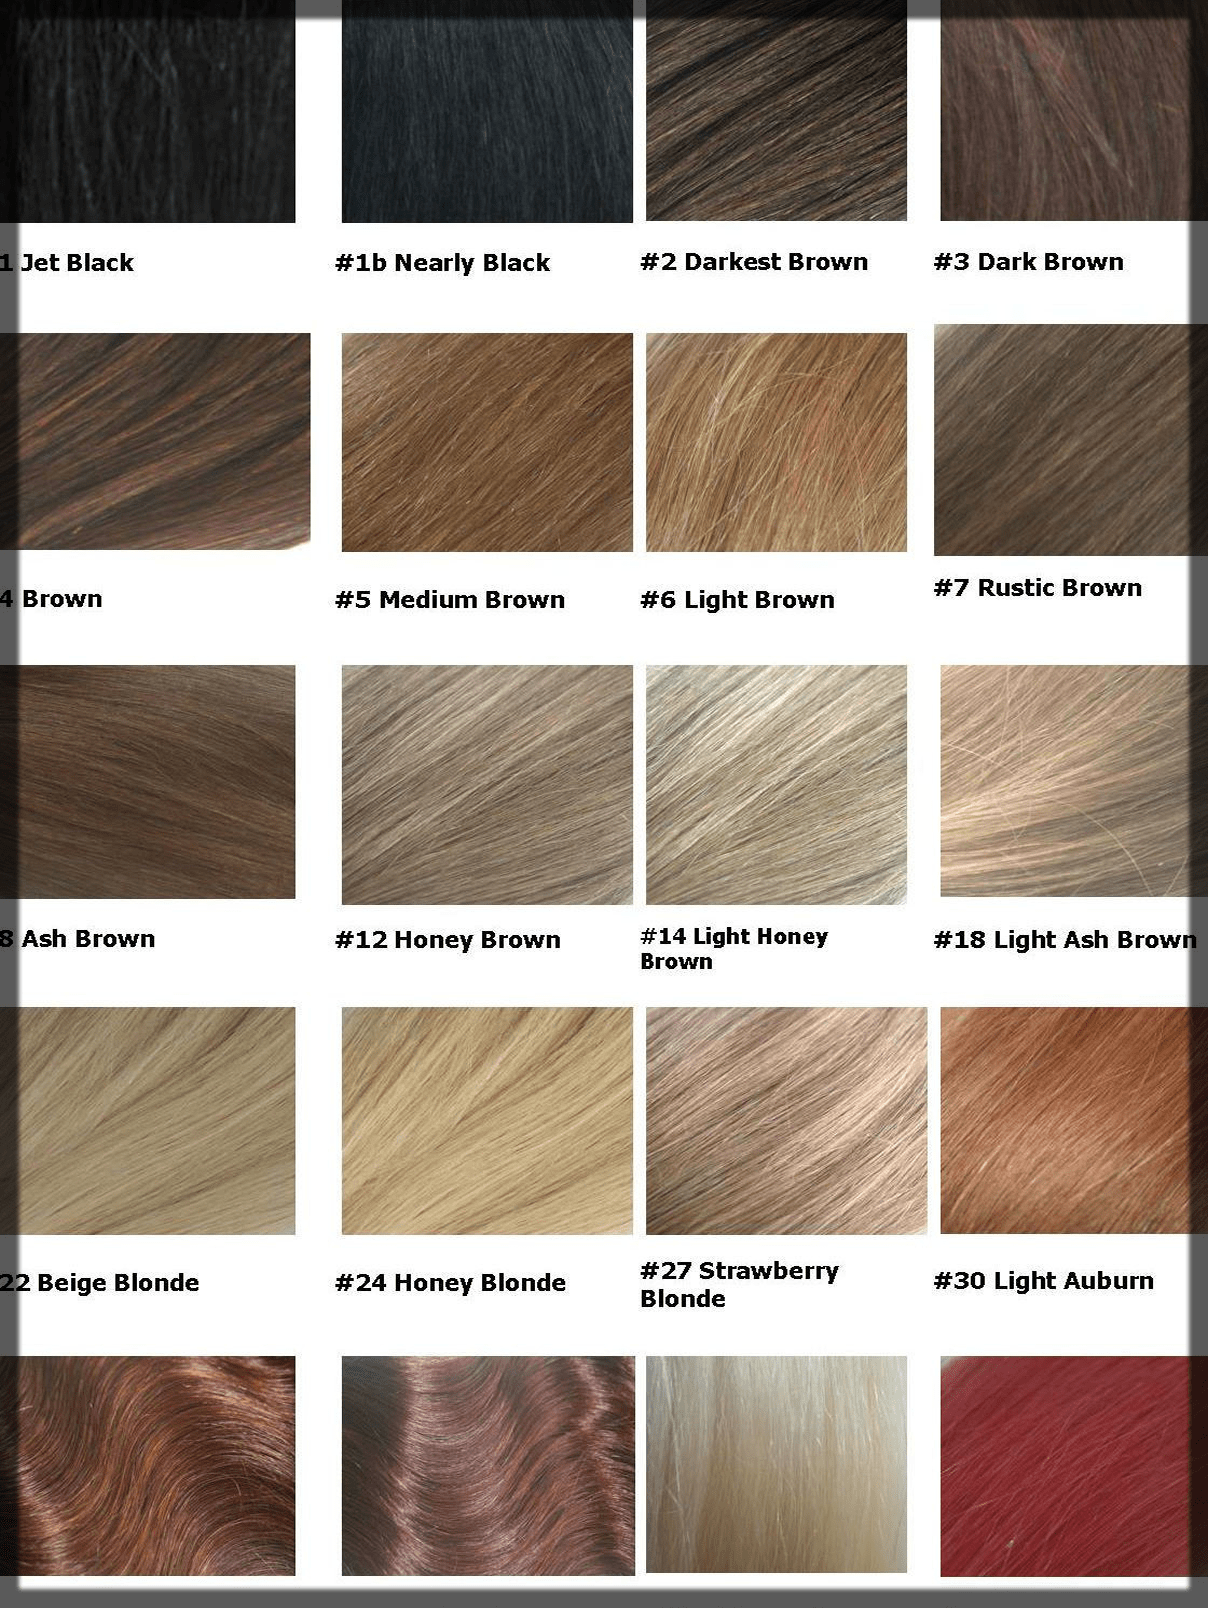 Choose your color wisely for dye at home